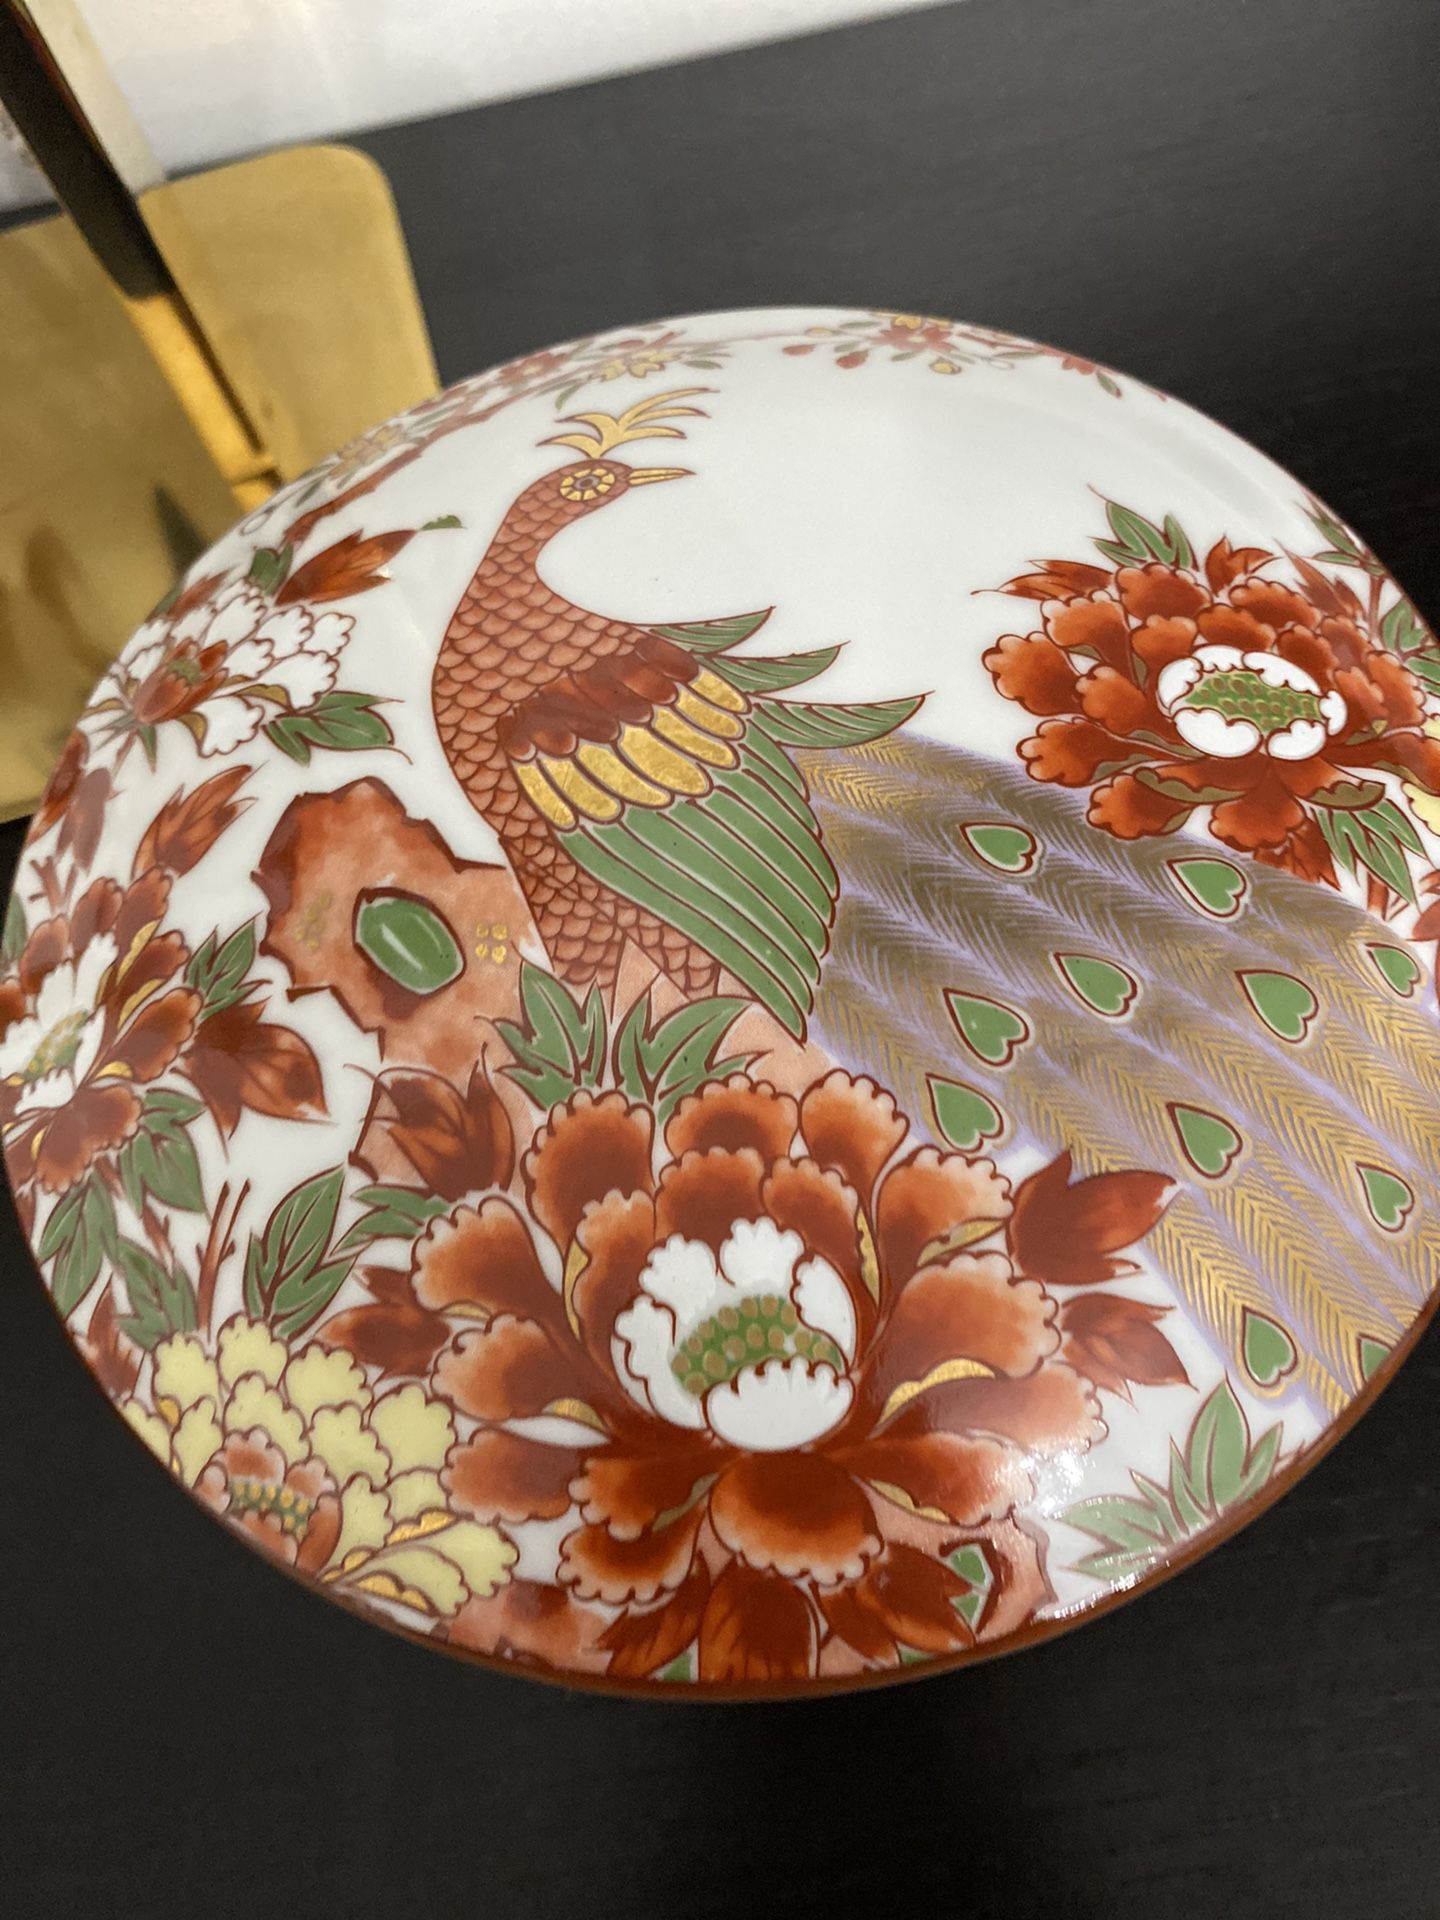 Vintage Japanese Bowls With a Peacock In Beautiful Colors. I Used It For Jewelry